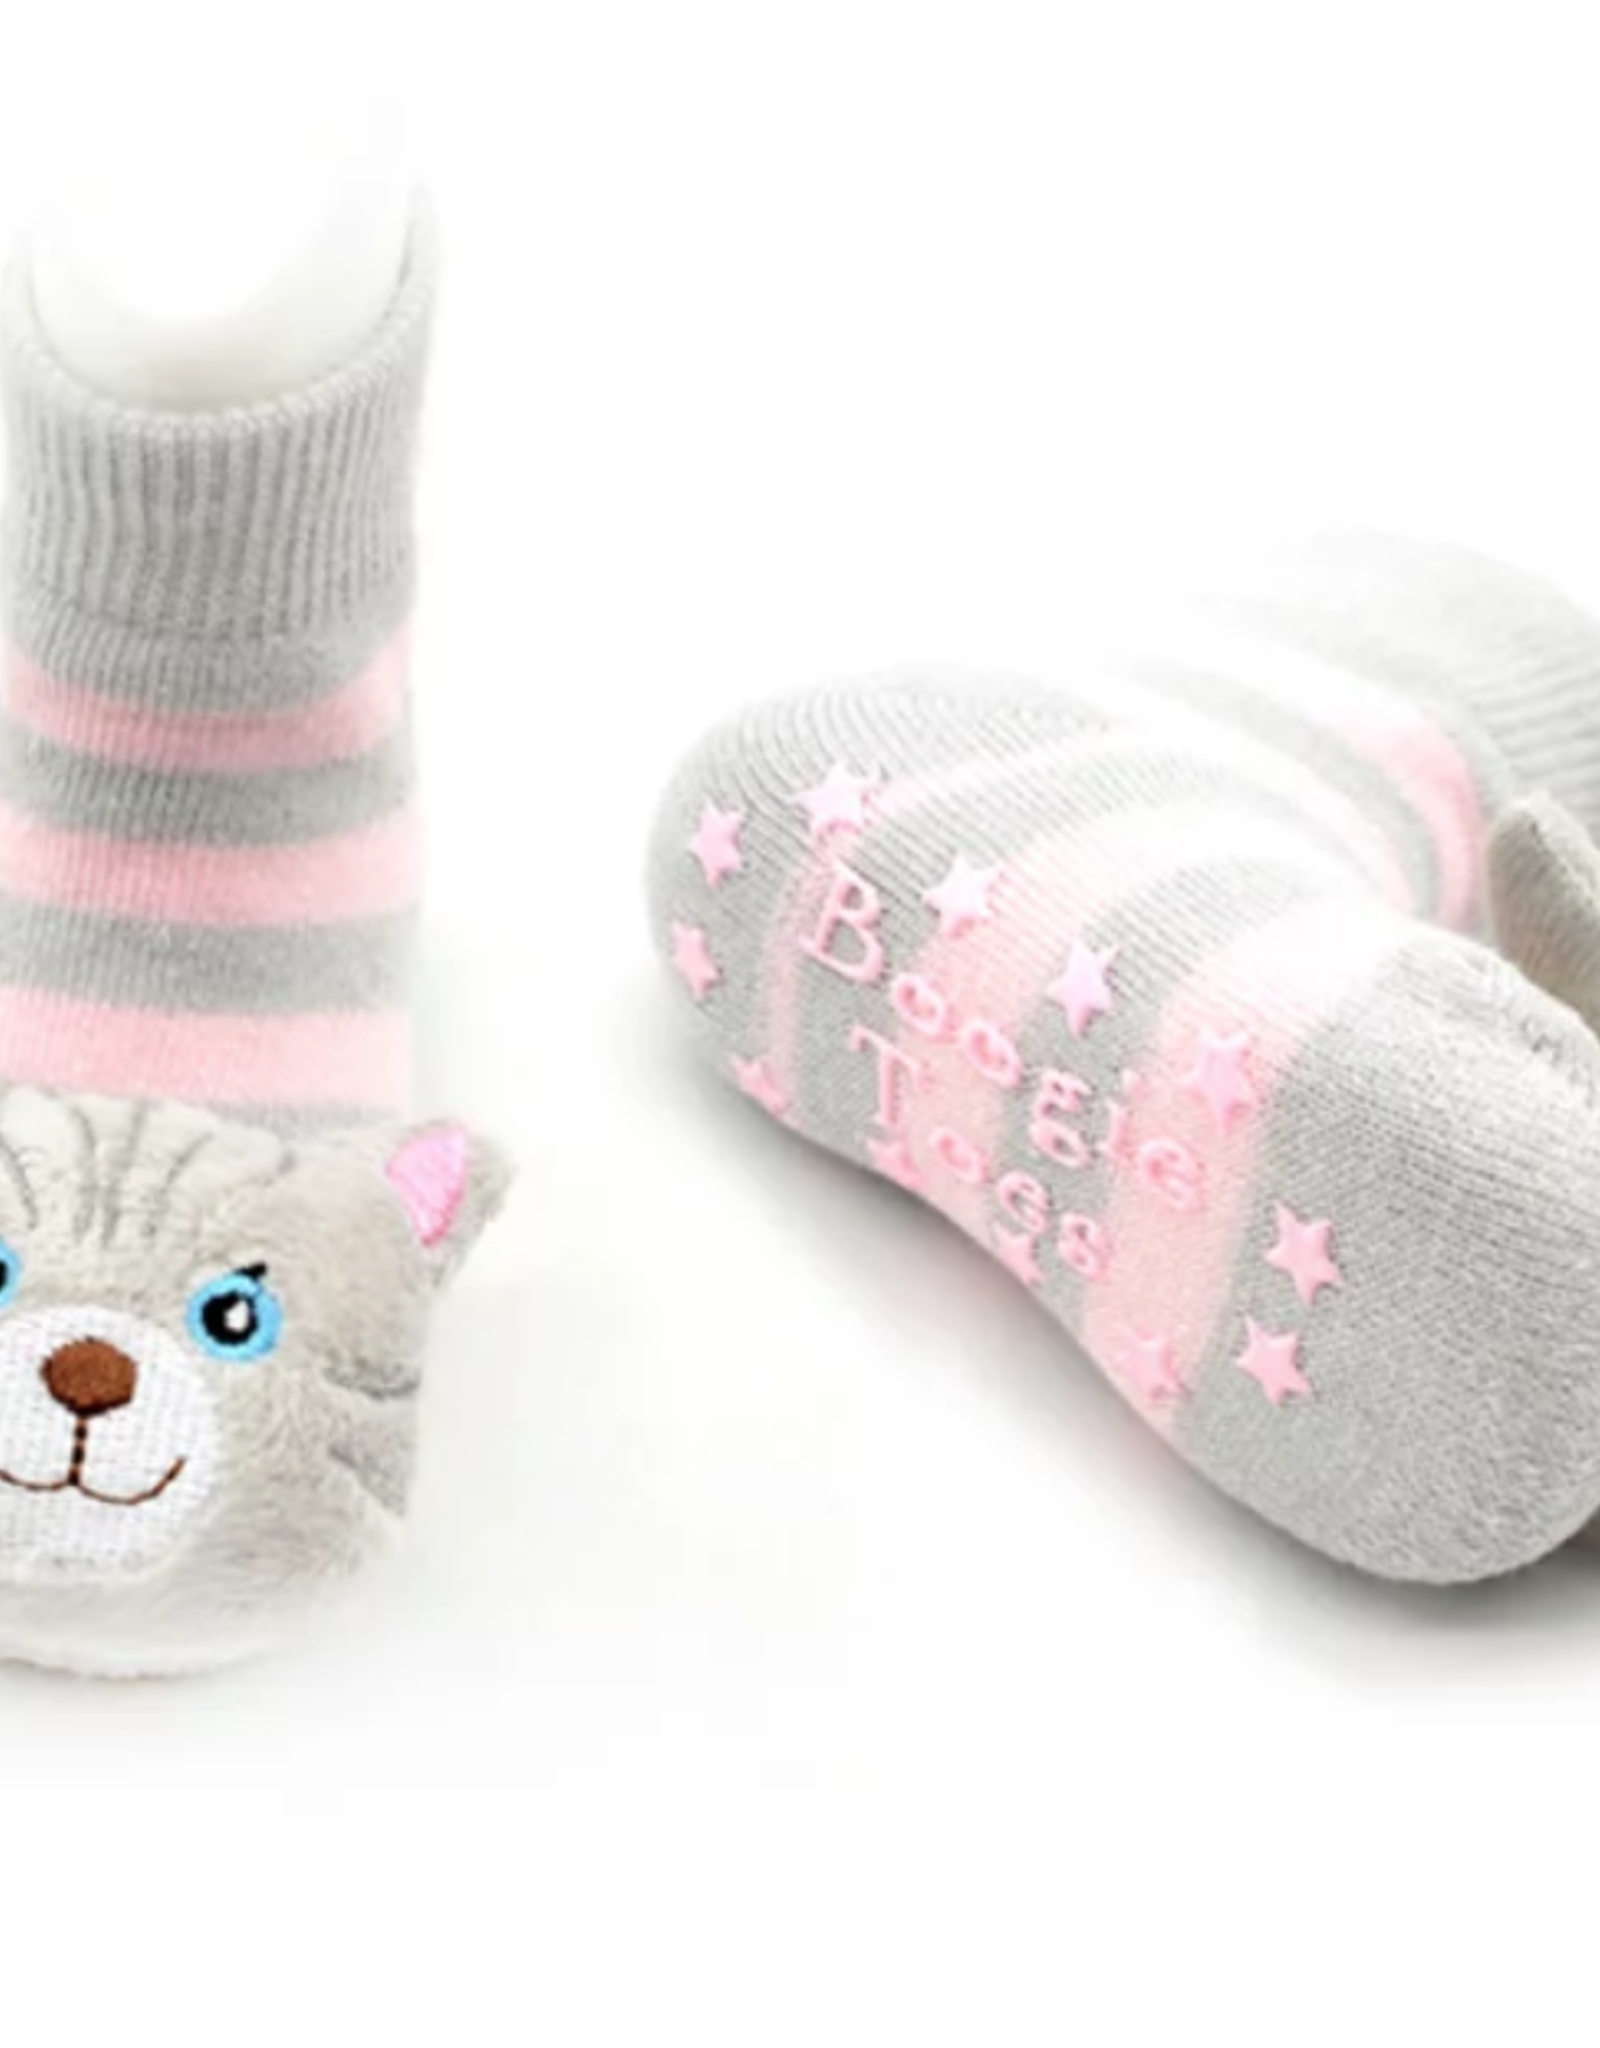 Piero Liventi Piero Liventi - Rattle Socks Gray Cat 0-1